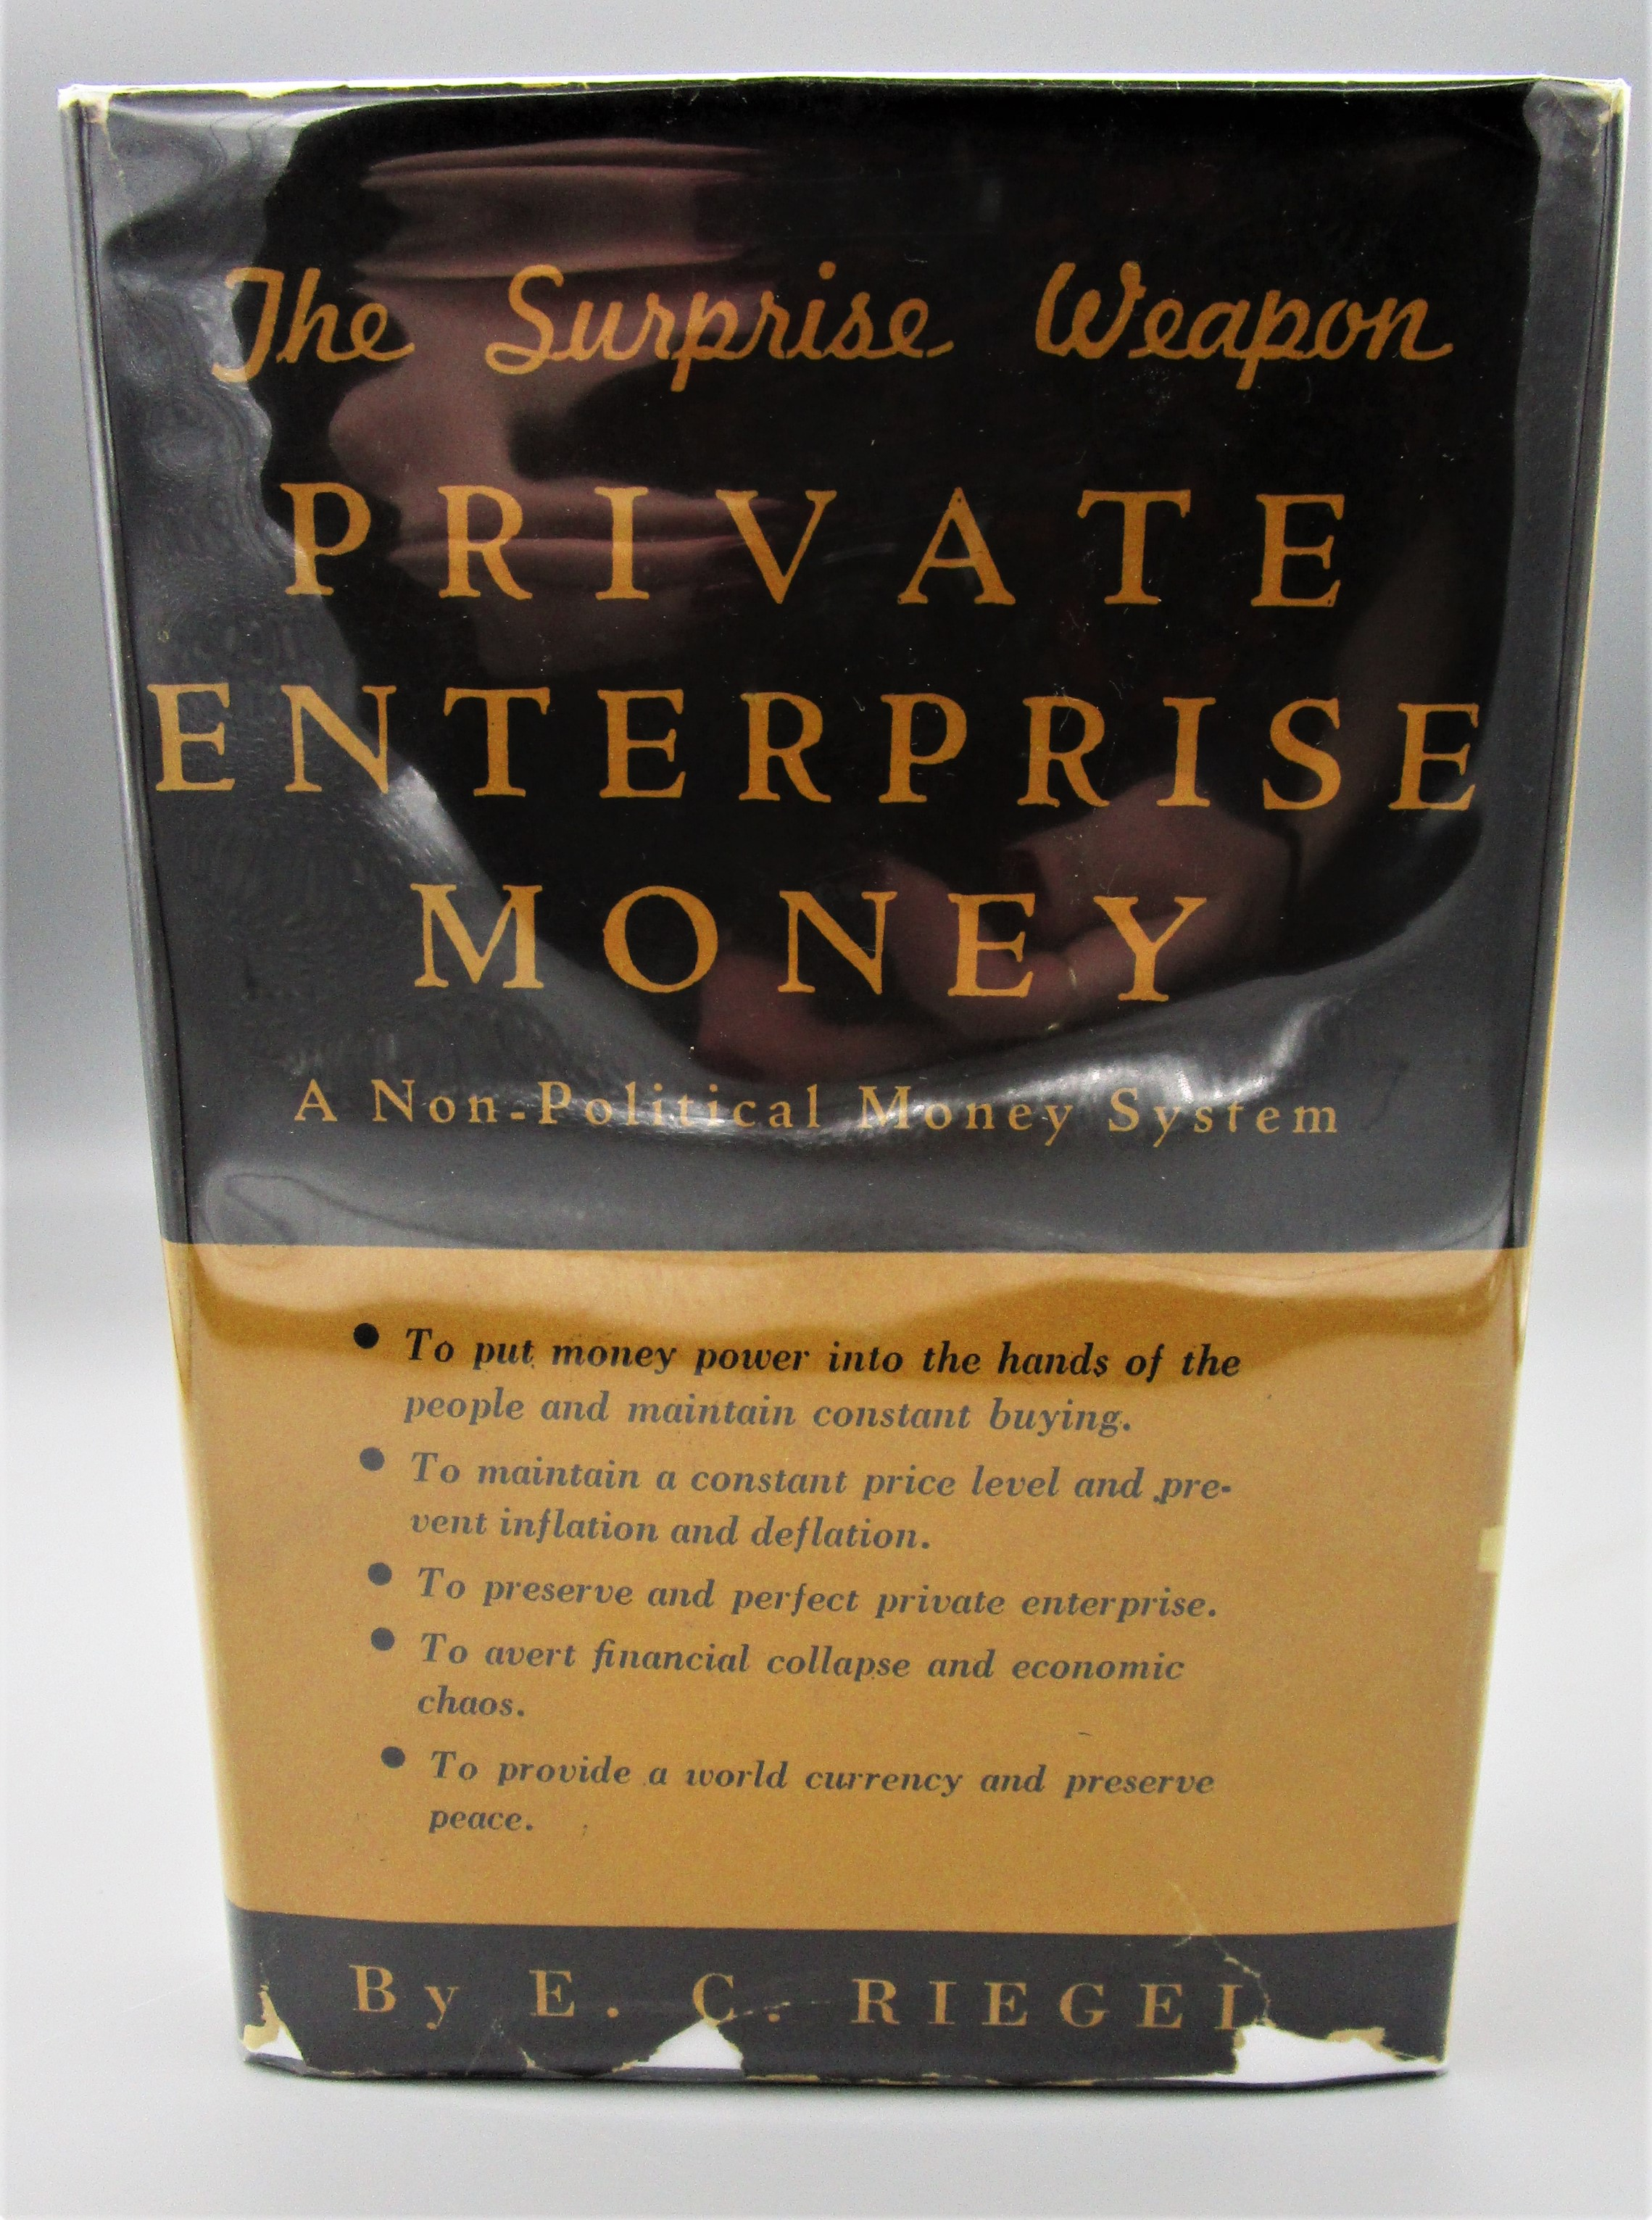 THE SURPRISE WEAPON PRIVATE ENTERPRISE MONEY, by E. C. Riegel - 1944 First Edition